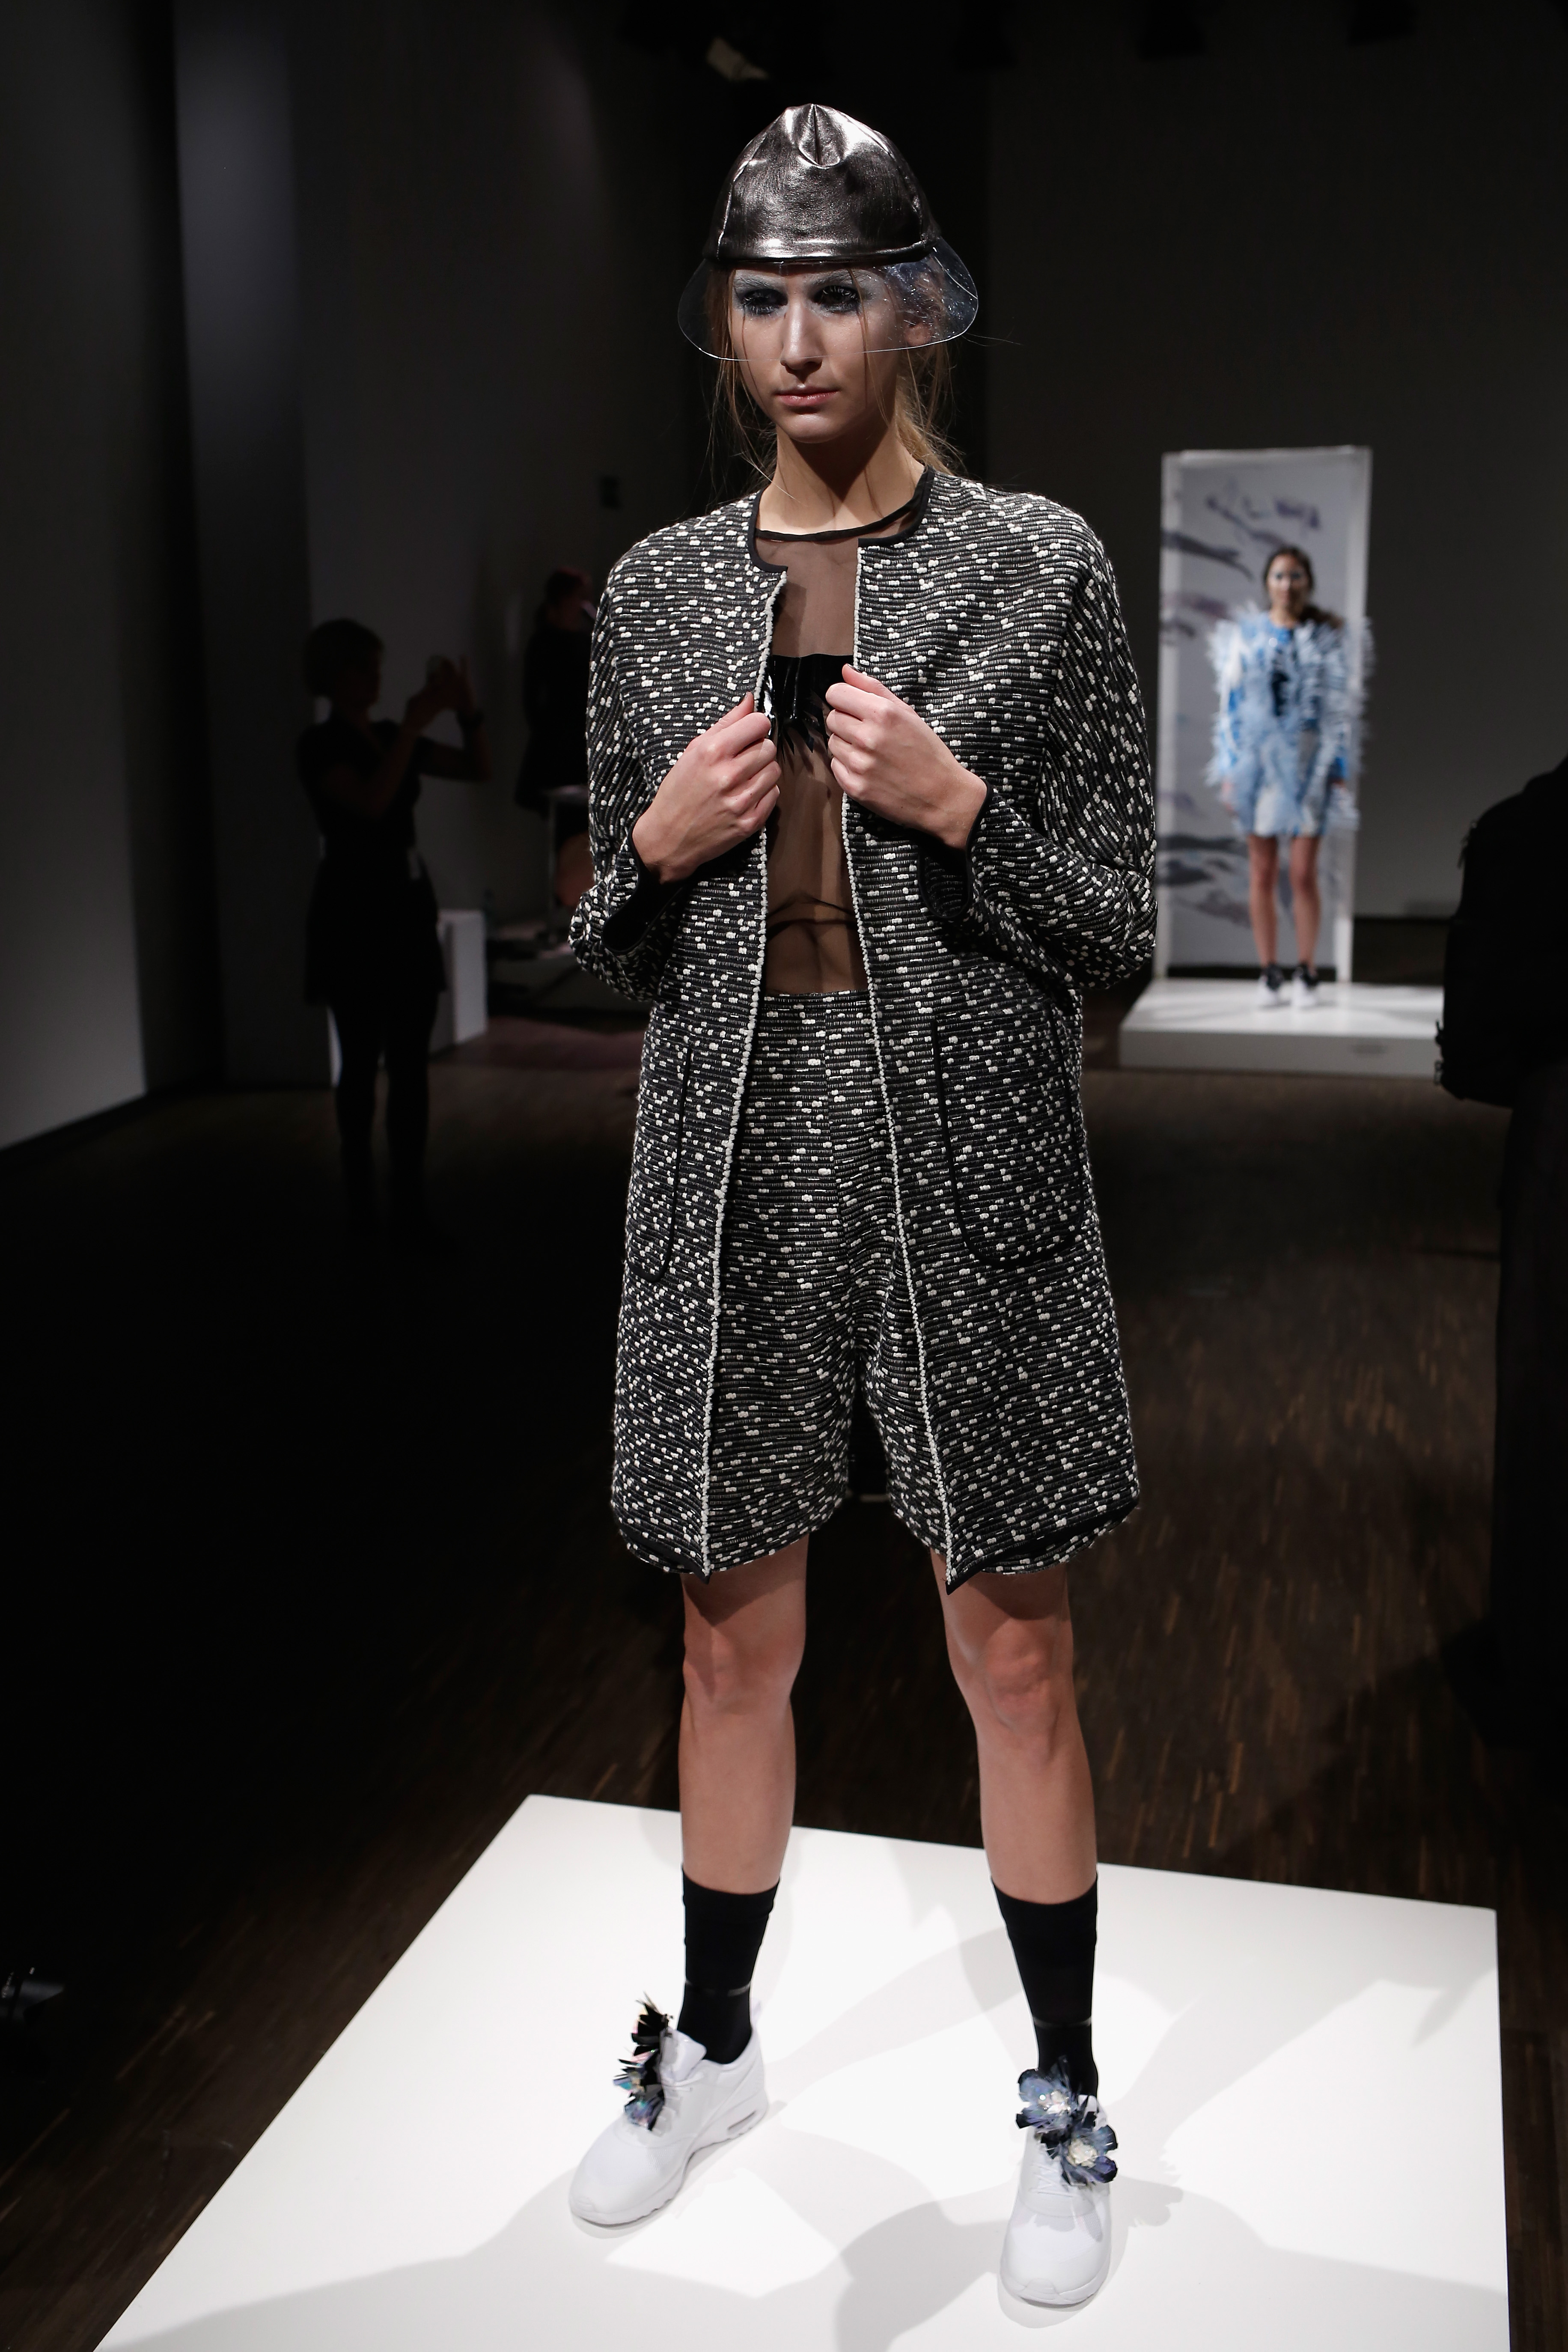 A model poses at the Steinrohner show during the Mercedes-Benz Fashion Week Berlin Autumn/Winter 2016 at Stage at me Collecto